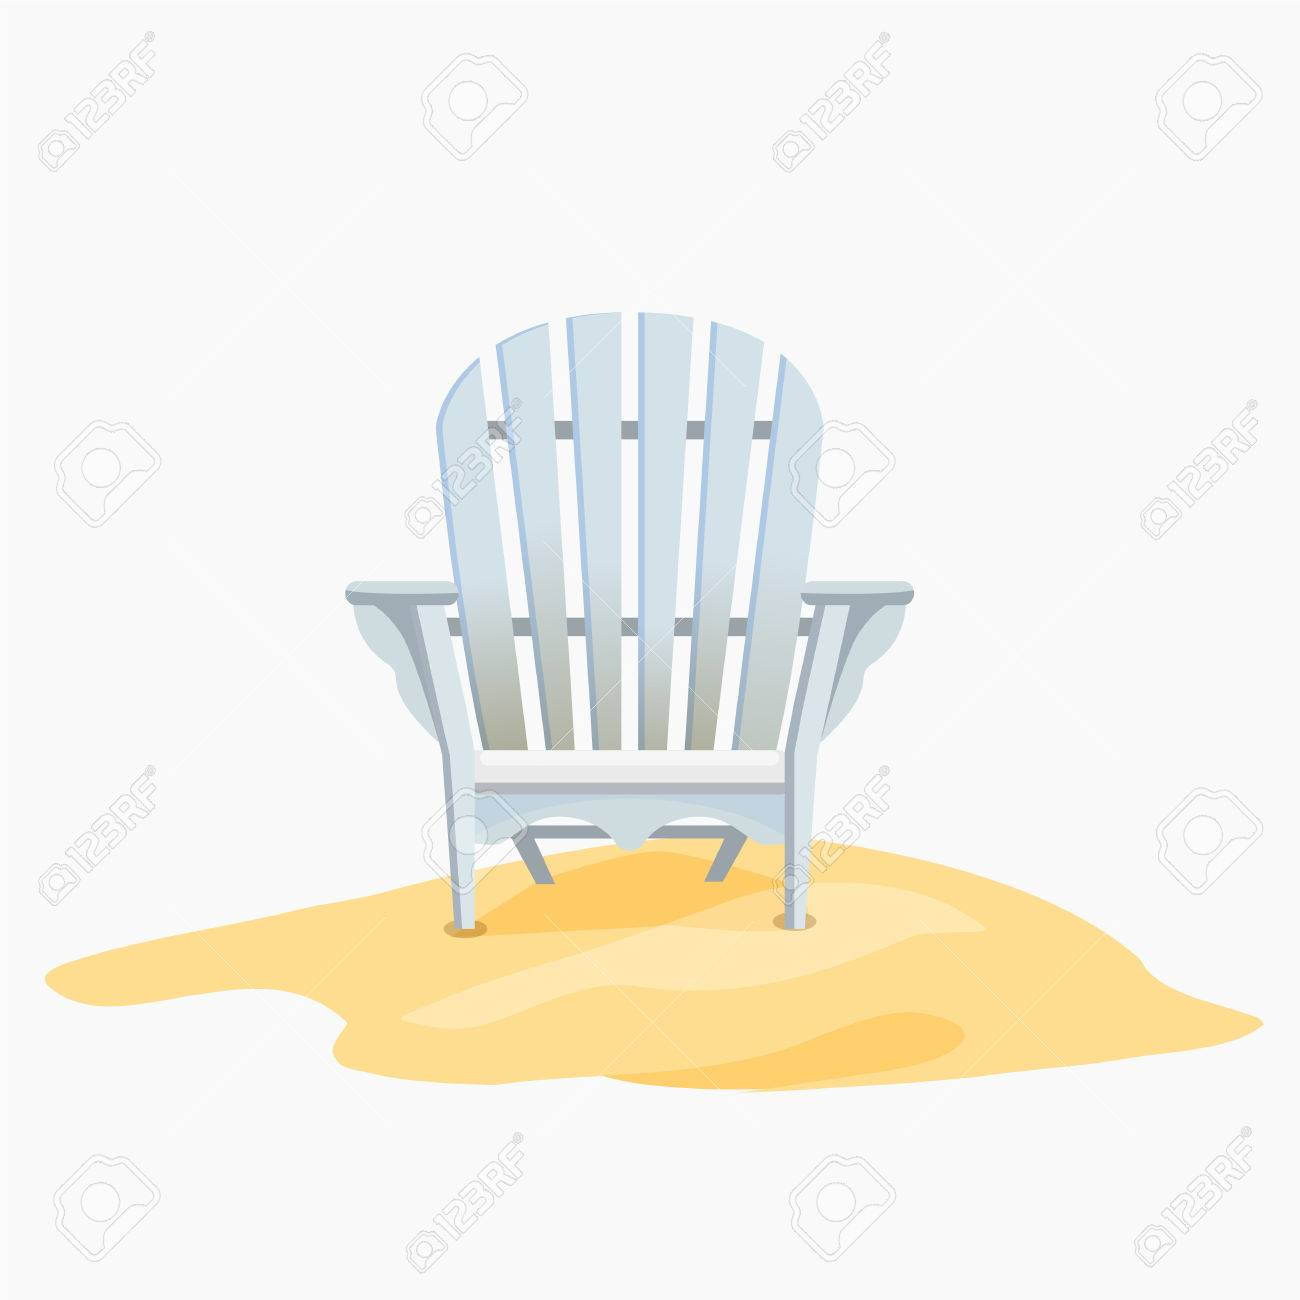 Adirondack chair standing on the yellow sand, Vector flat illustration